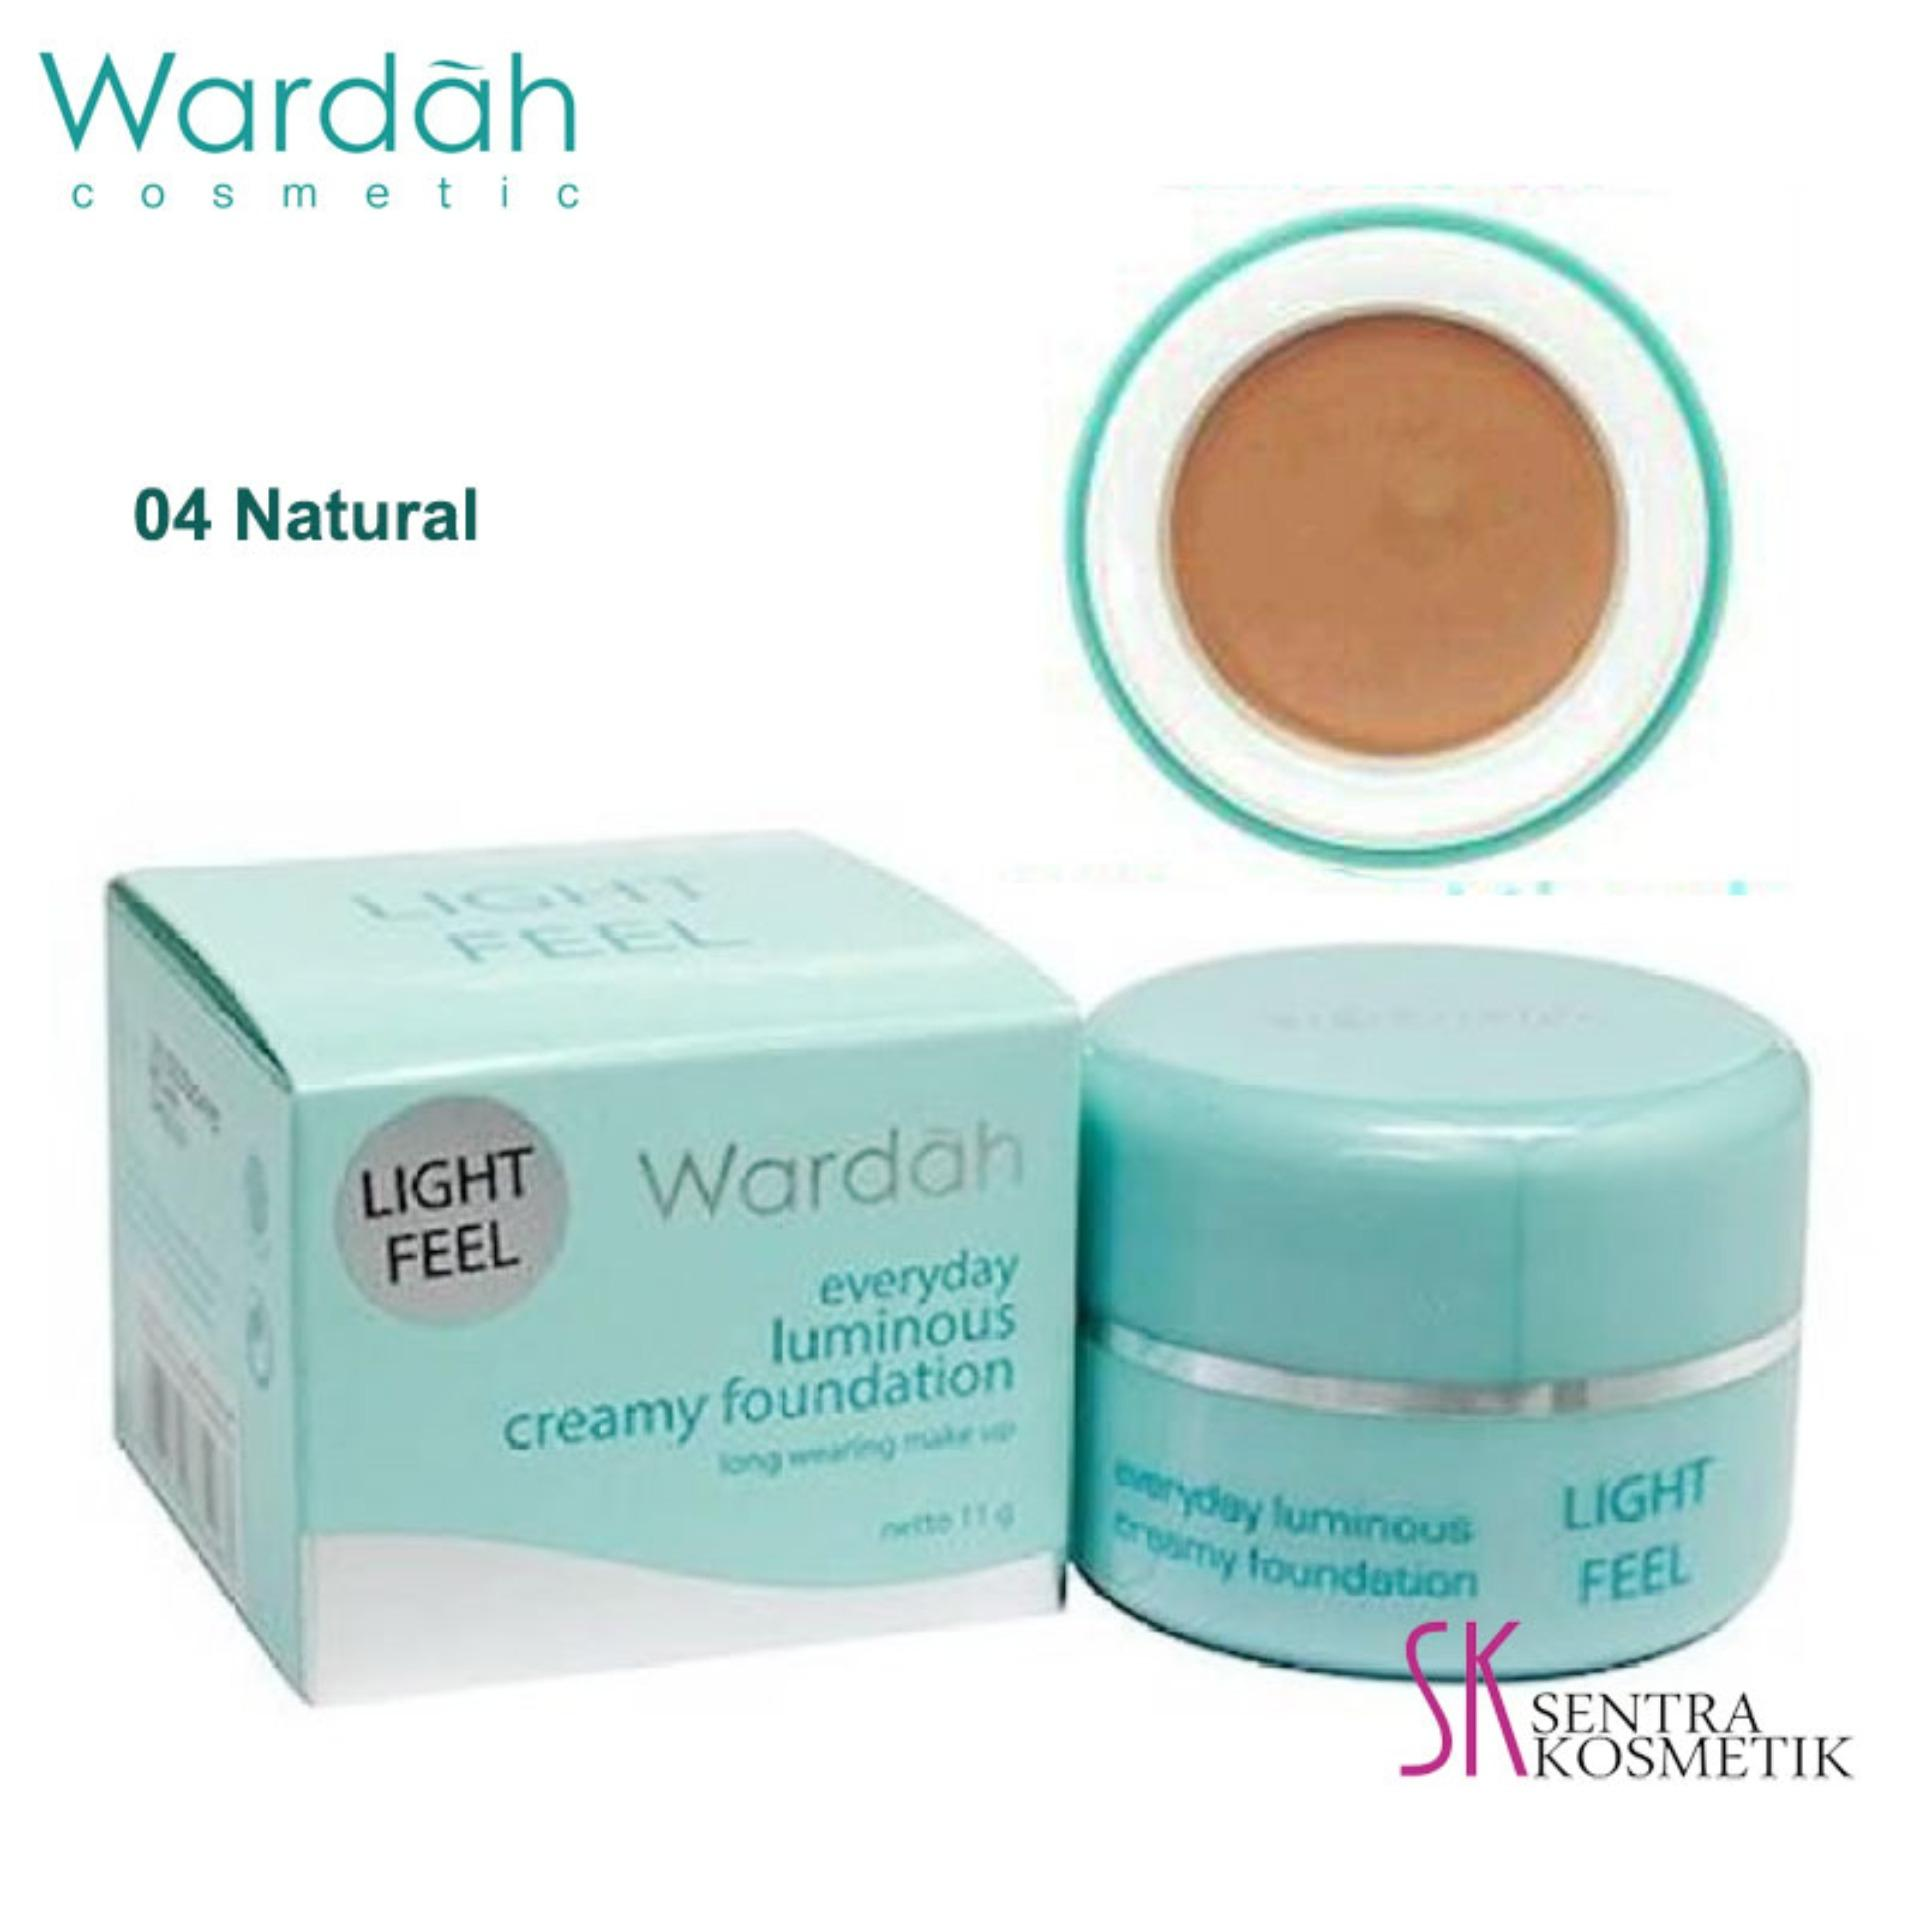 Tersedia dalah 4 pilihan warna Wardah Everyday Luminous Creamy Foundation 04 Natural